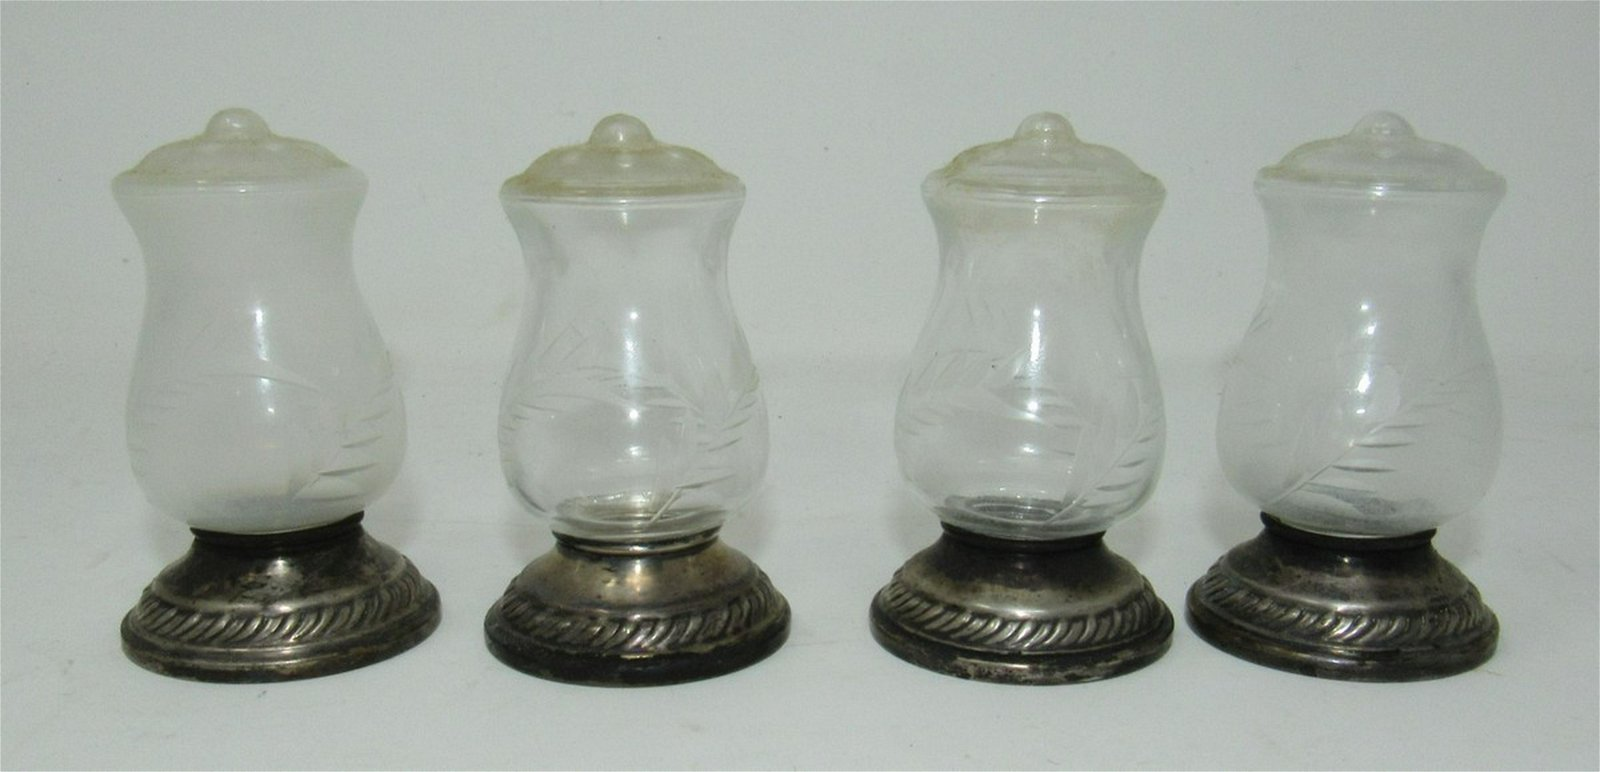 Salt and Pepper Shakers with Sterling Silver Base